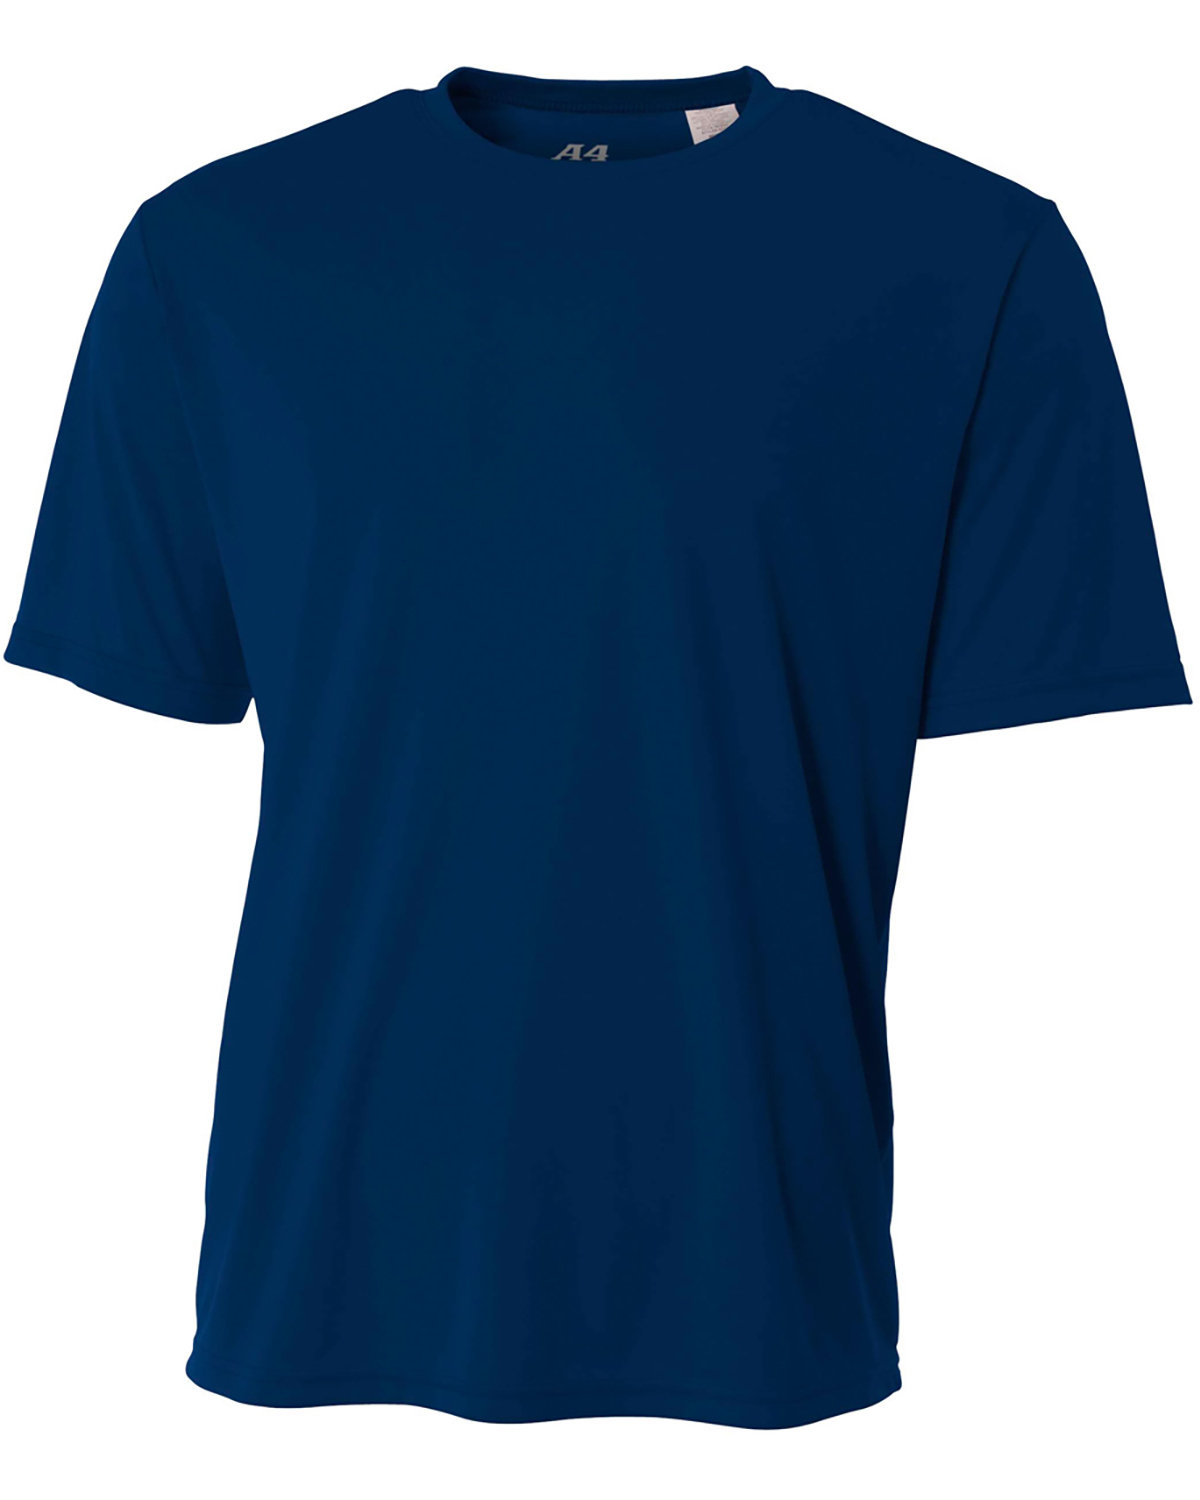 A4 Youth Cooling Performance T-Shirt NAVY